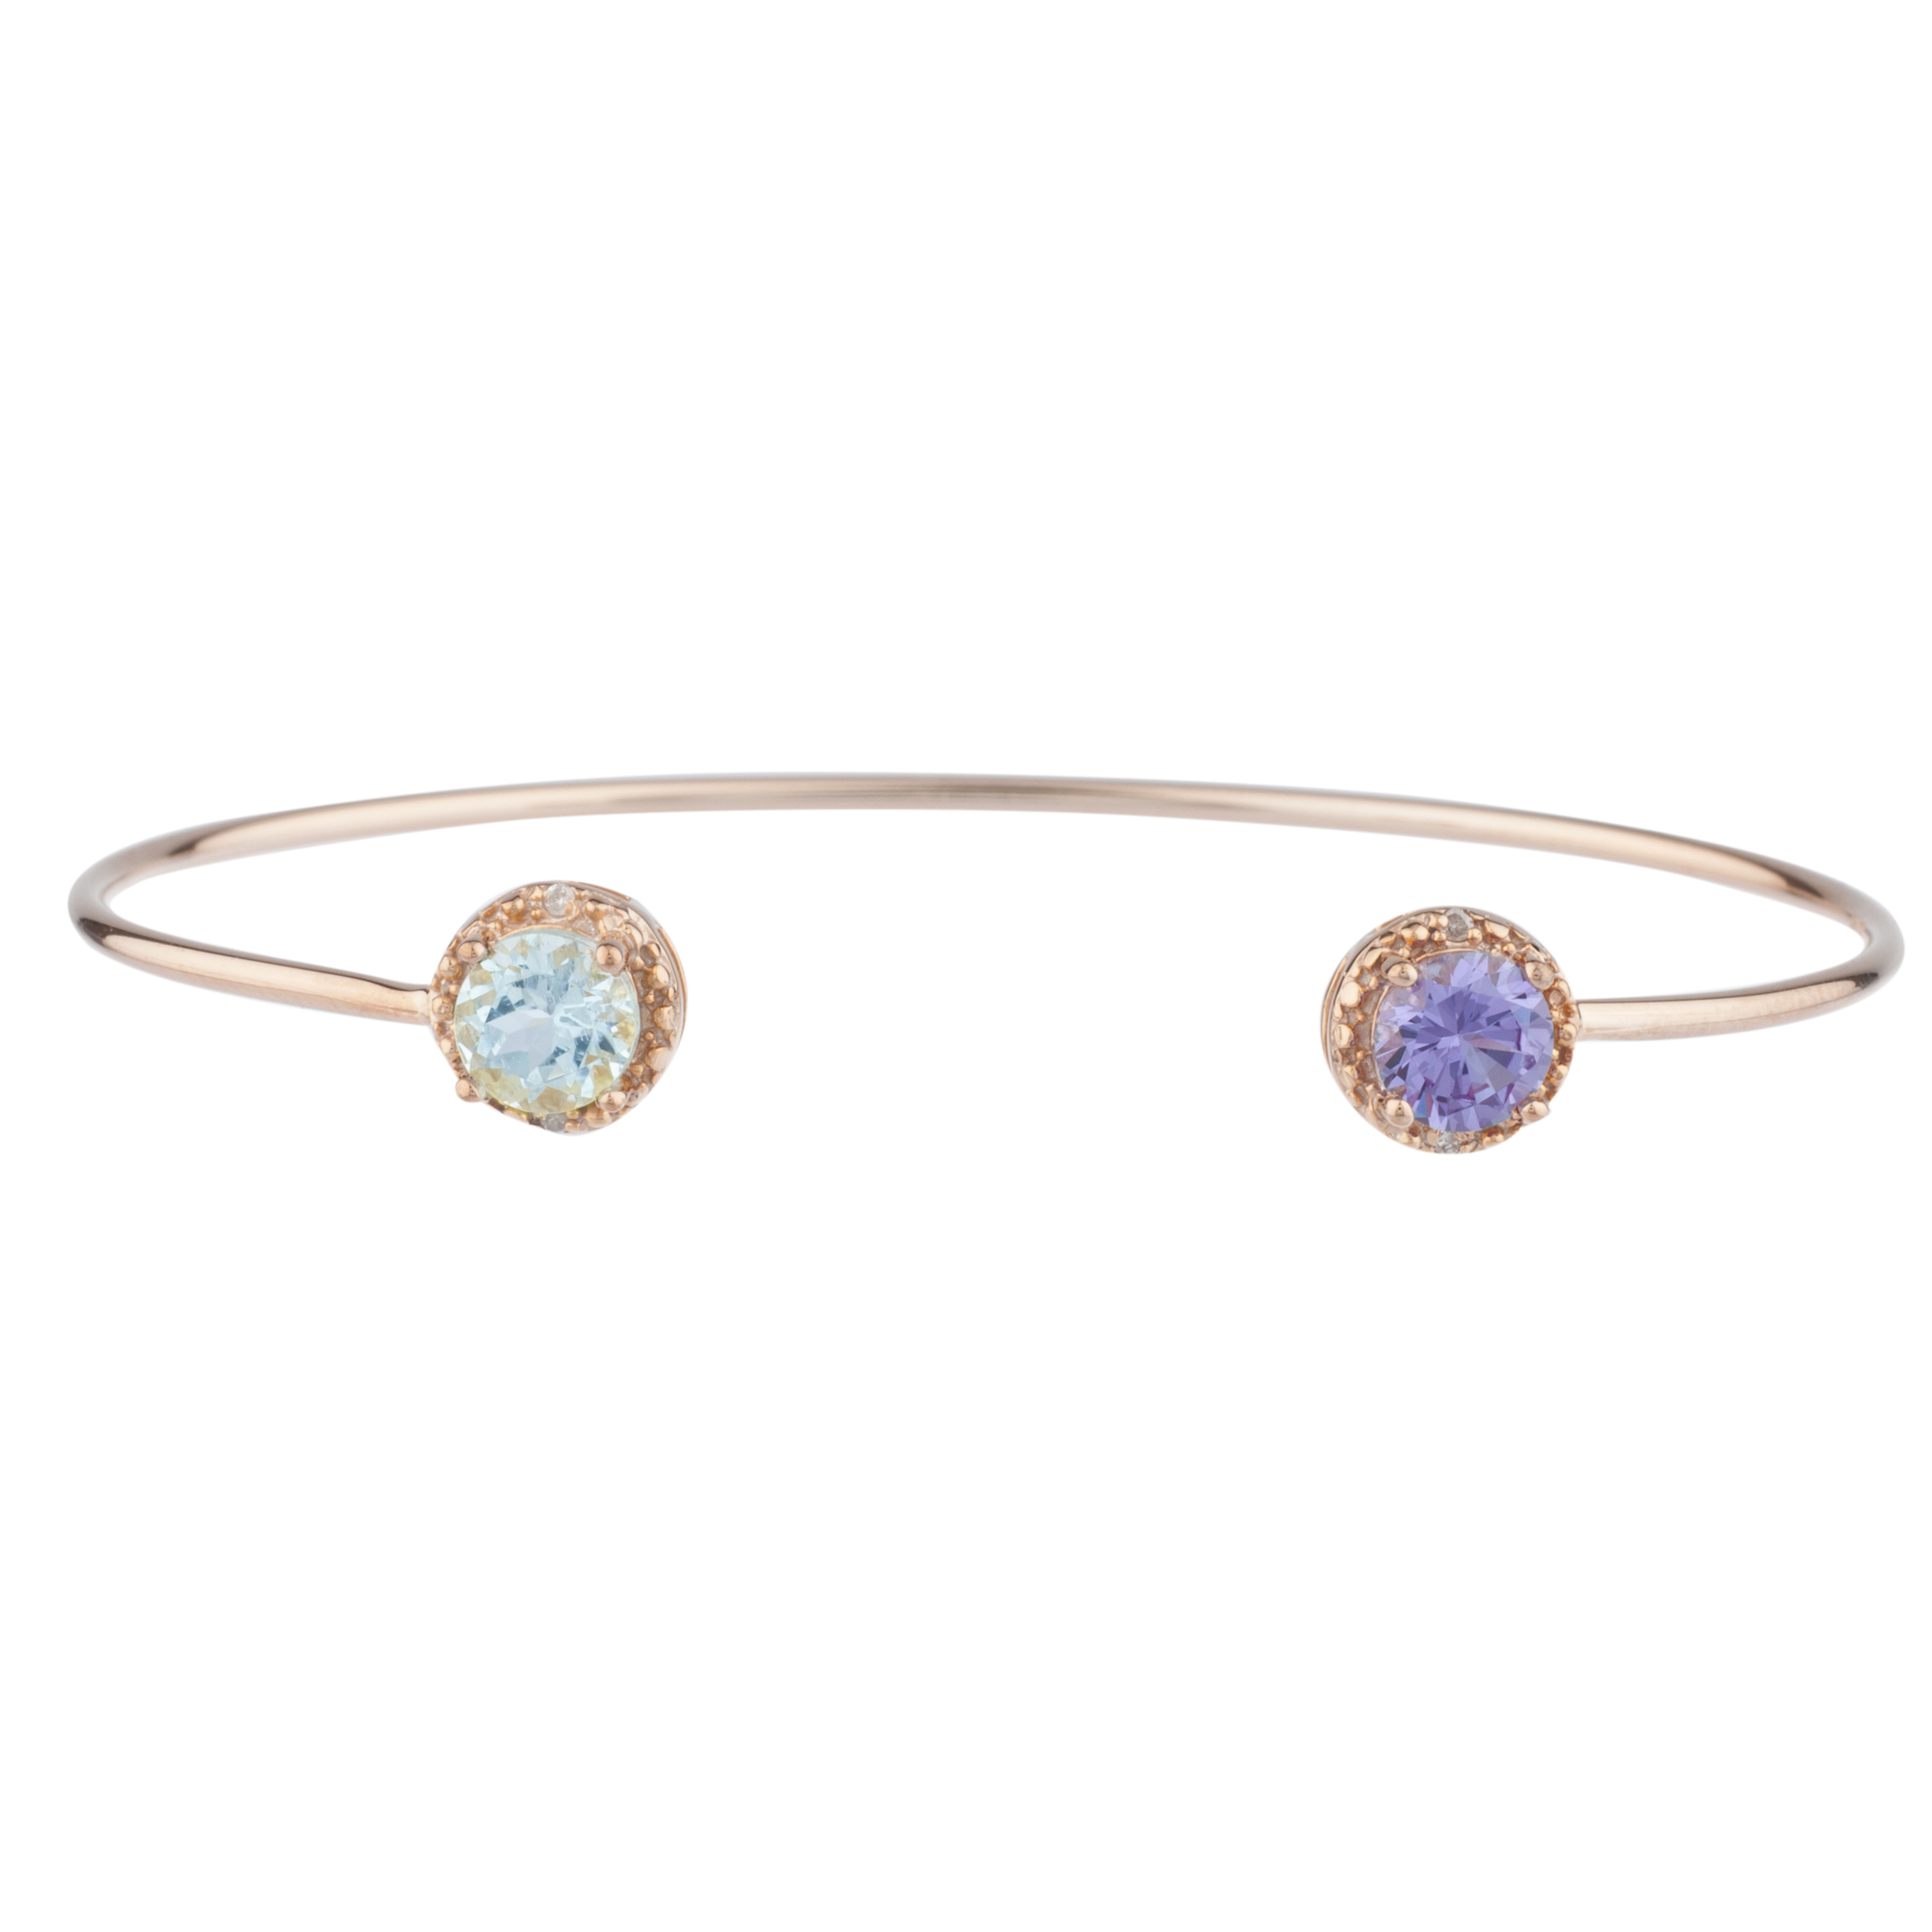 Genuine Aquamarine & Amethyst Diamond Bangle Round Bracelet 14Kt Rose Gold Plated Over .925 Sterling Silver by Elizabeth Jewelry Inc